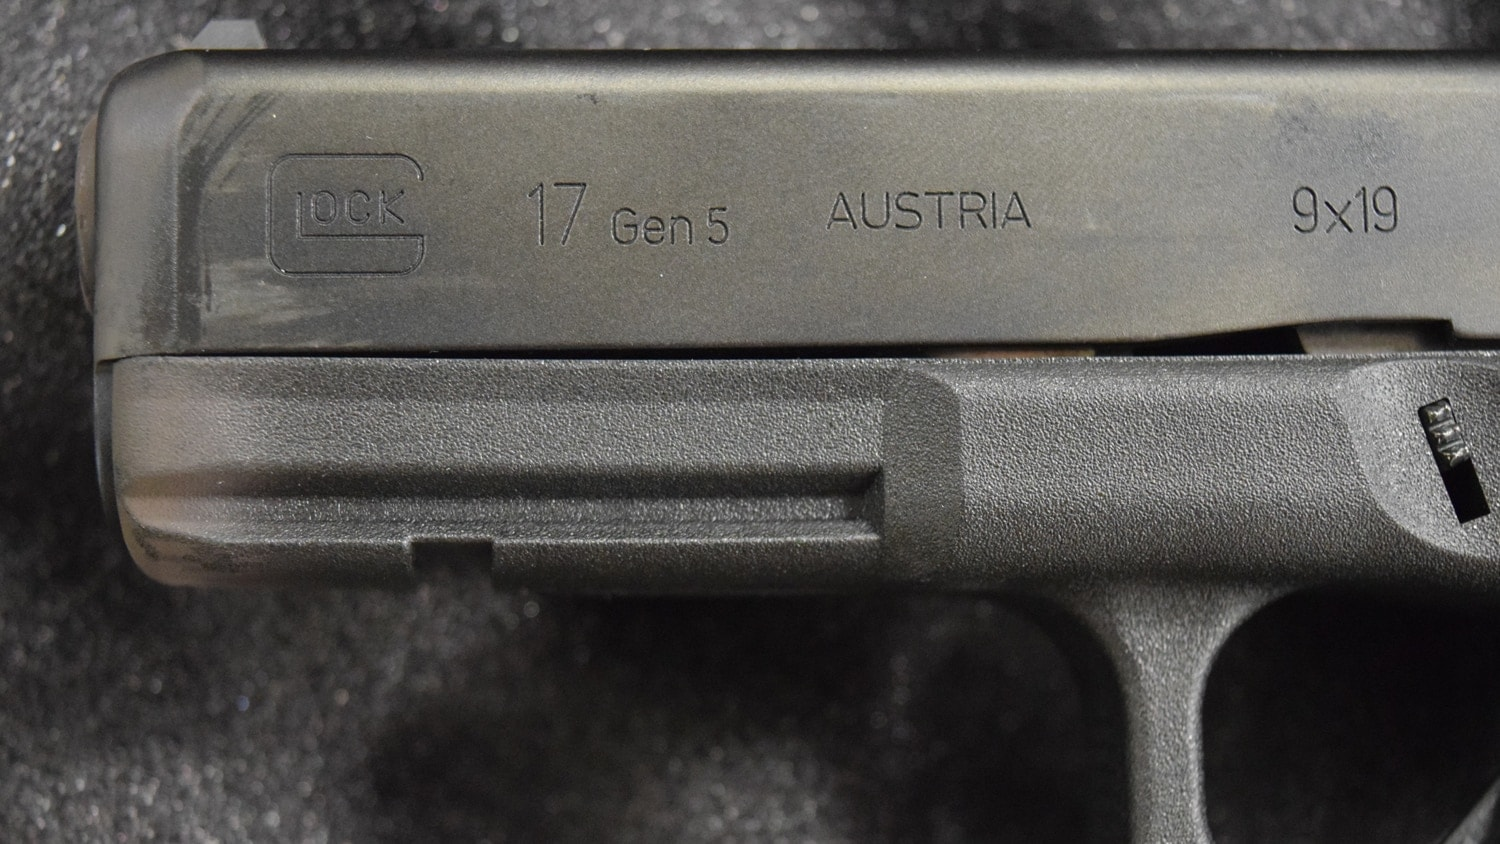 Gen5 Glock could be bad news for competitors